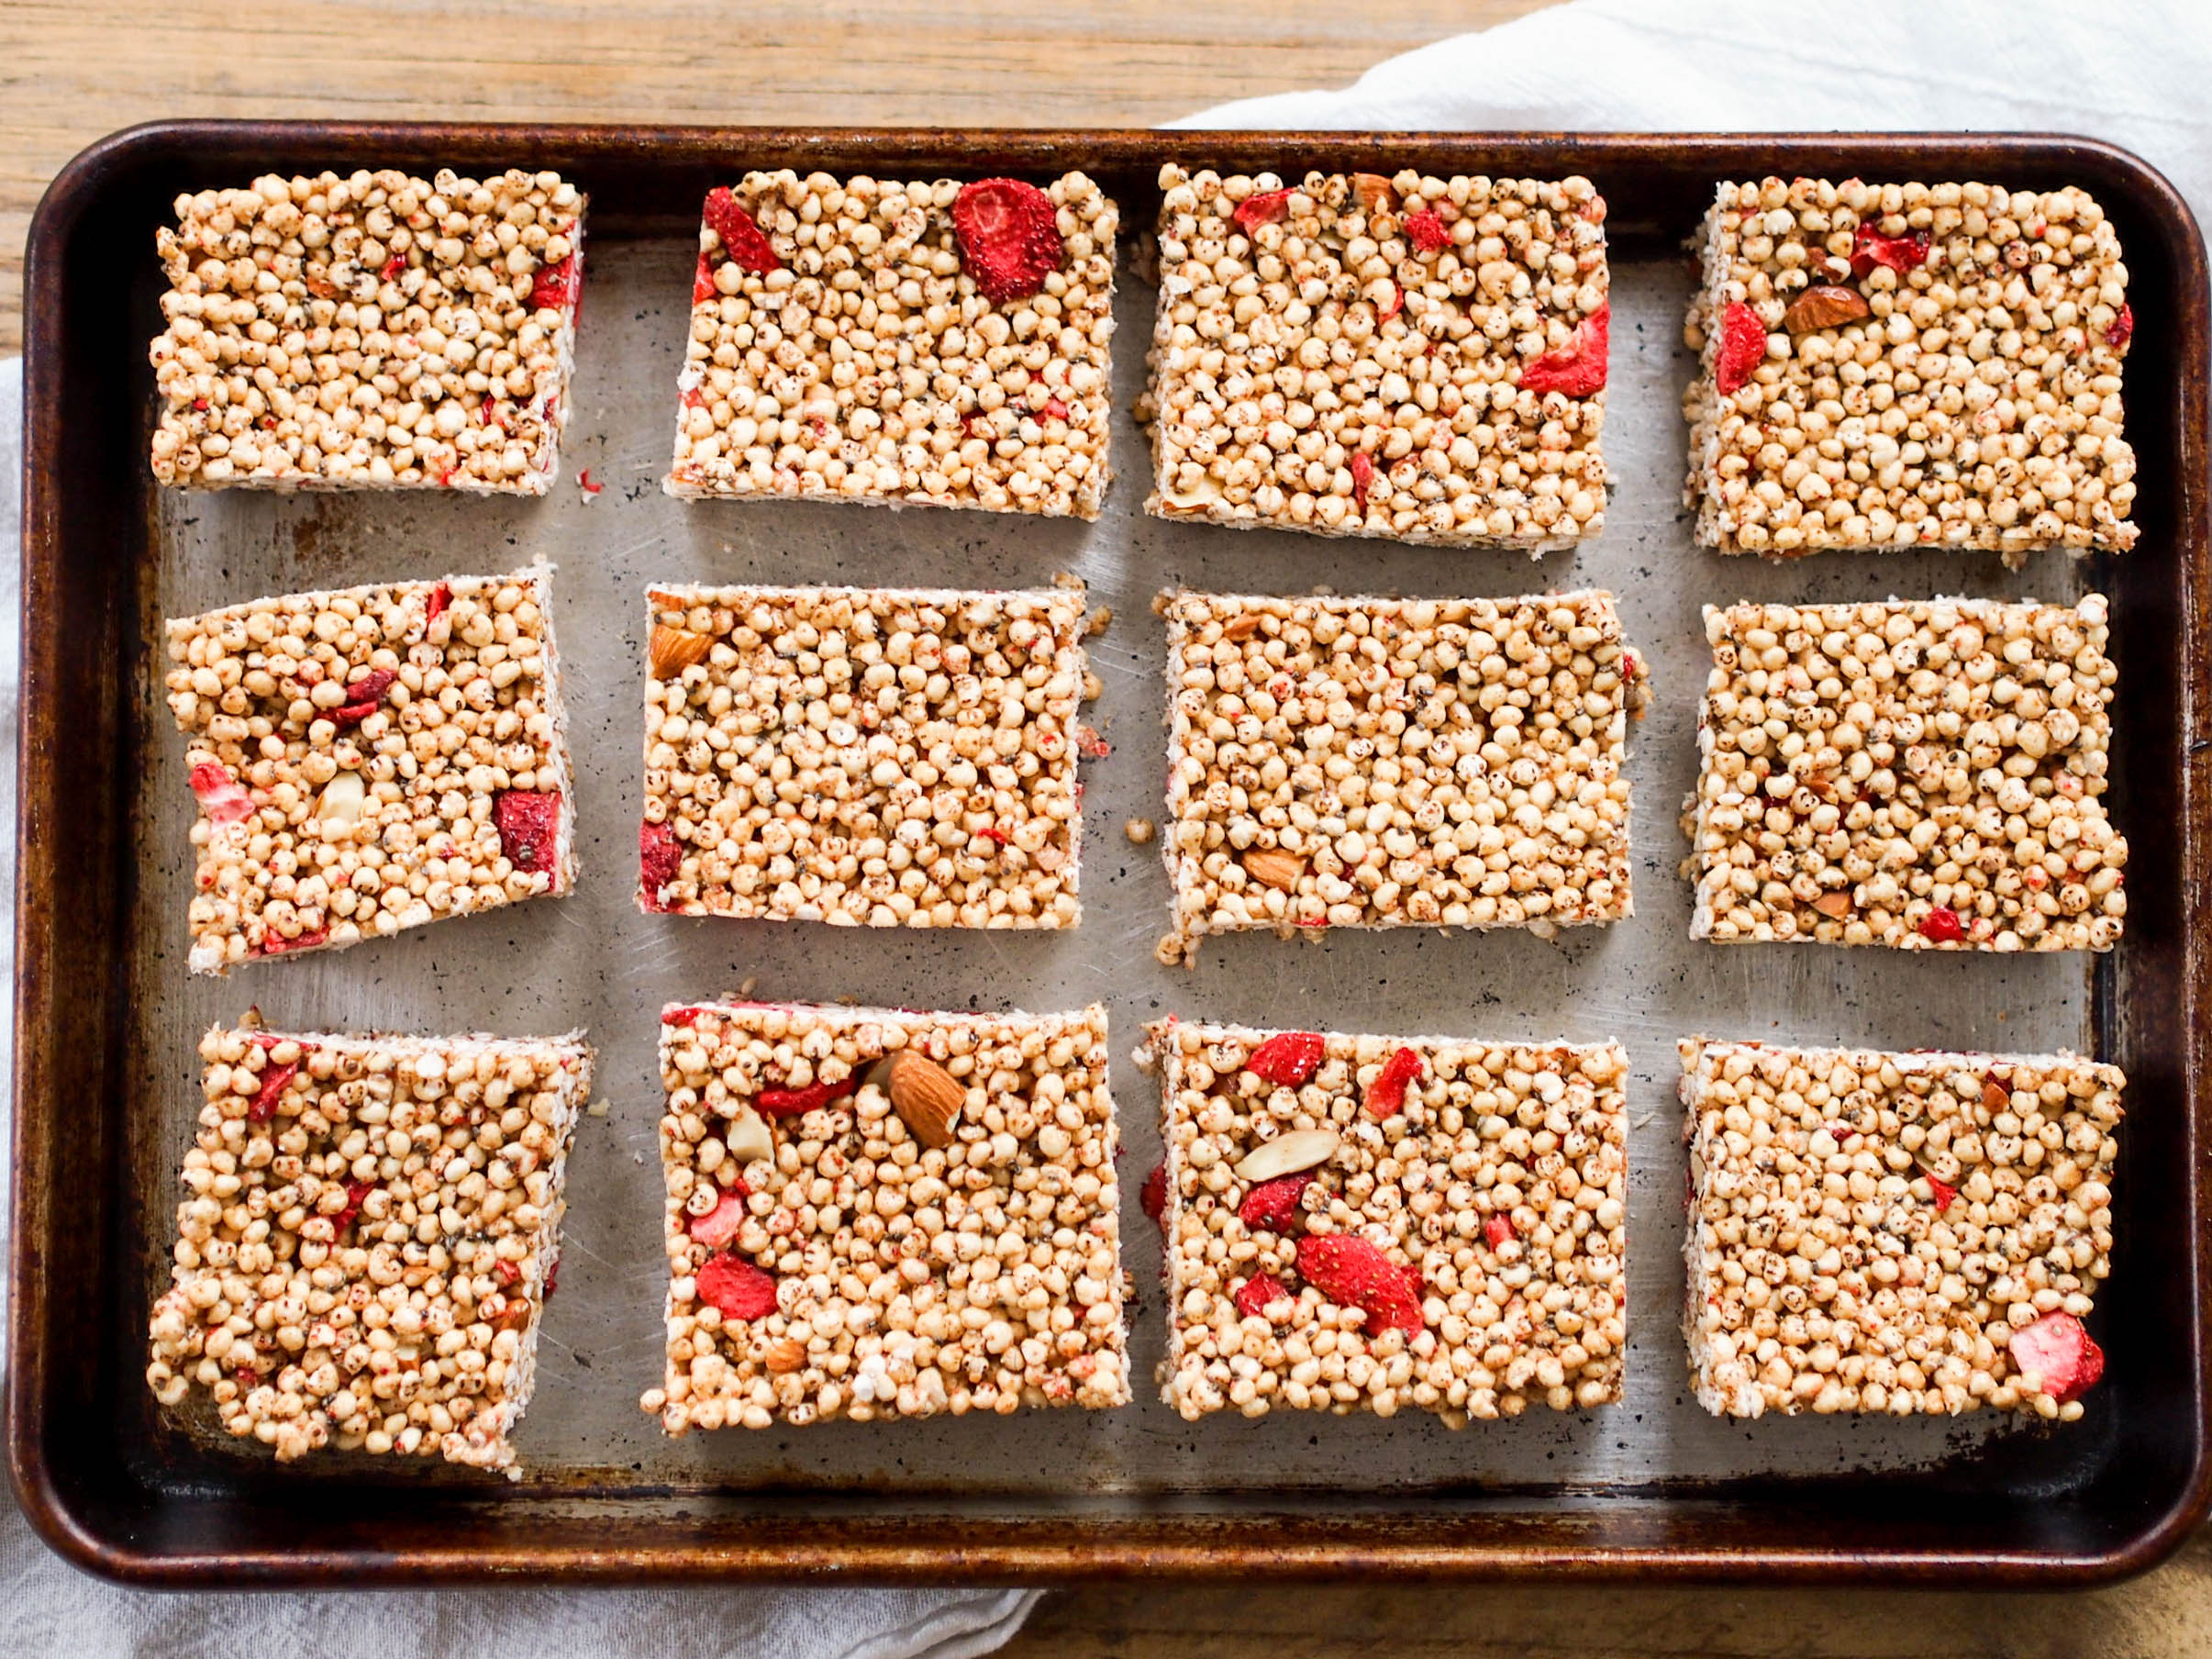 Snack on these marshmallow free crispy treats with almonds and freeze dried strawberries!